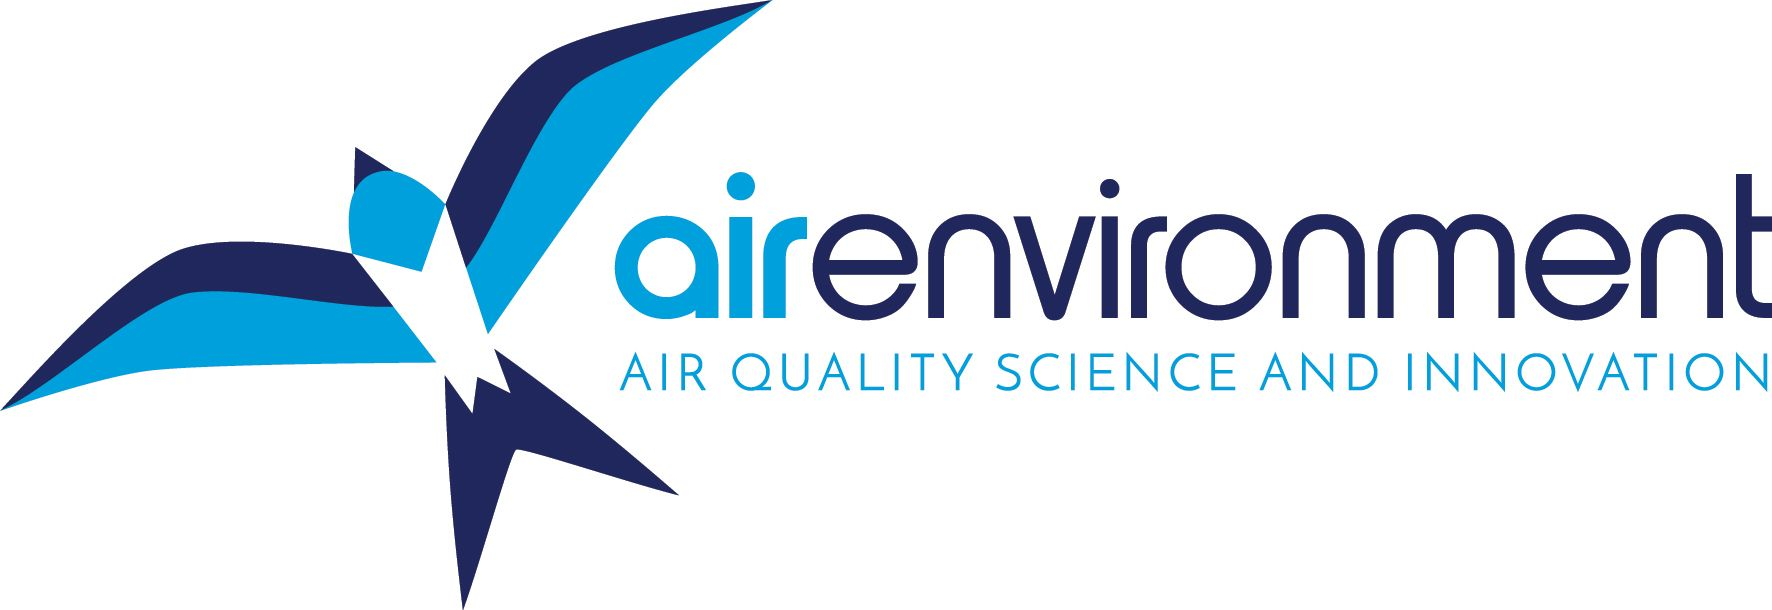 airenvironment-logo